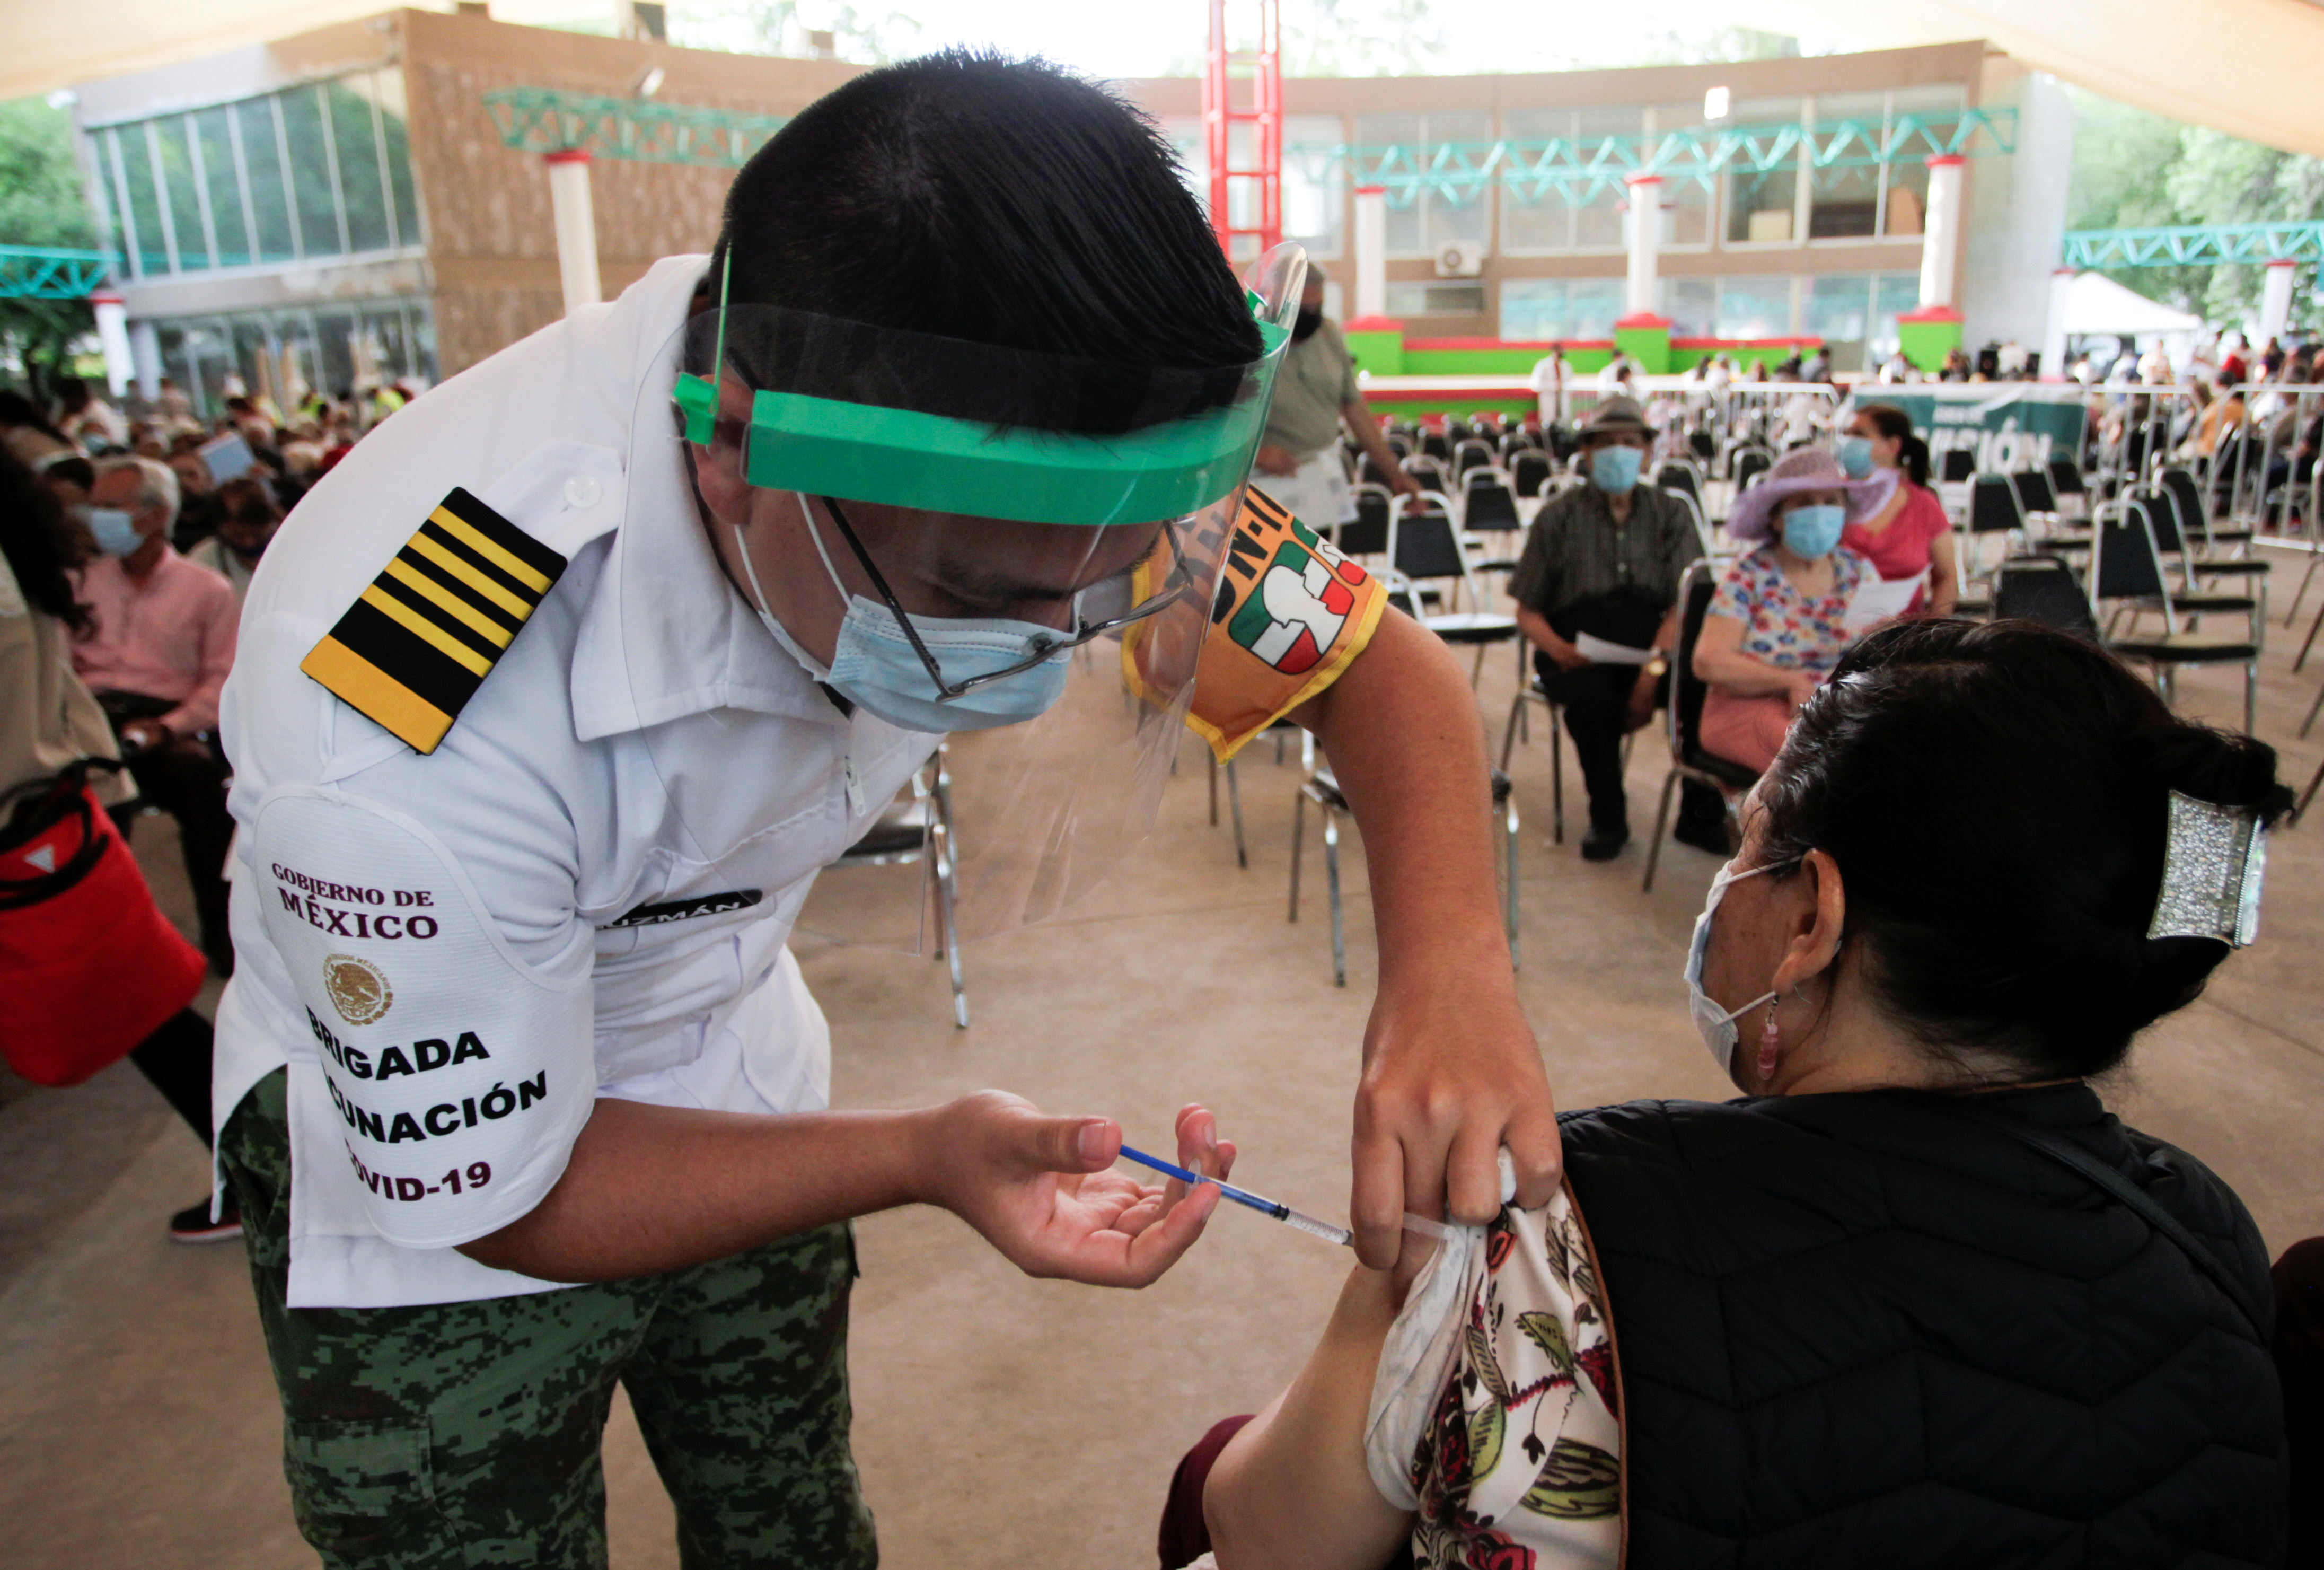 A woman receives a dose of the AstraZeneca coronavirus disease (COVID-19) vaccine, during a mass vaccination program in Monterrey, Mexico April 12, 2021. REUTERS/Daniel Becerril